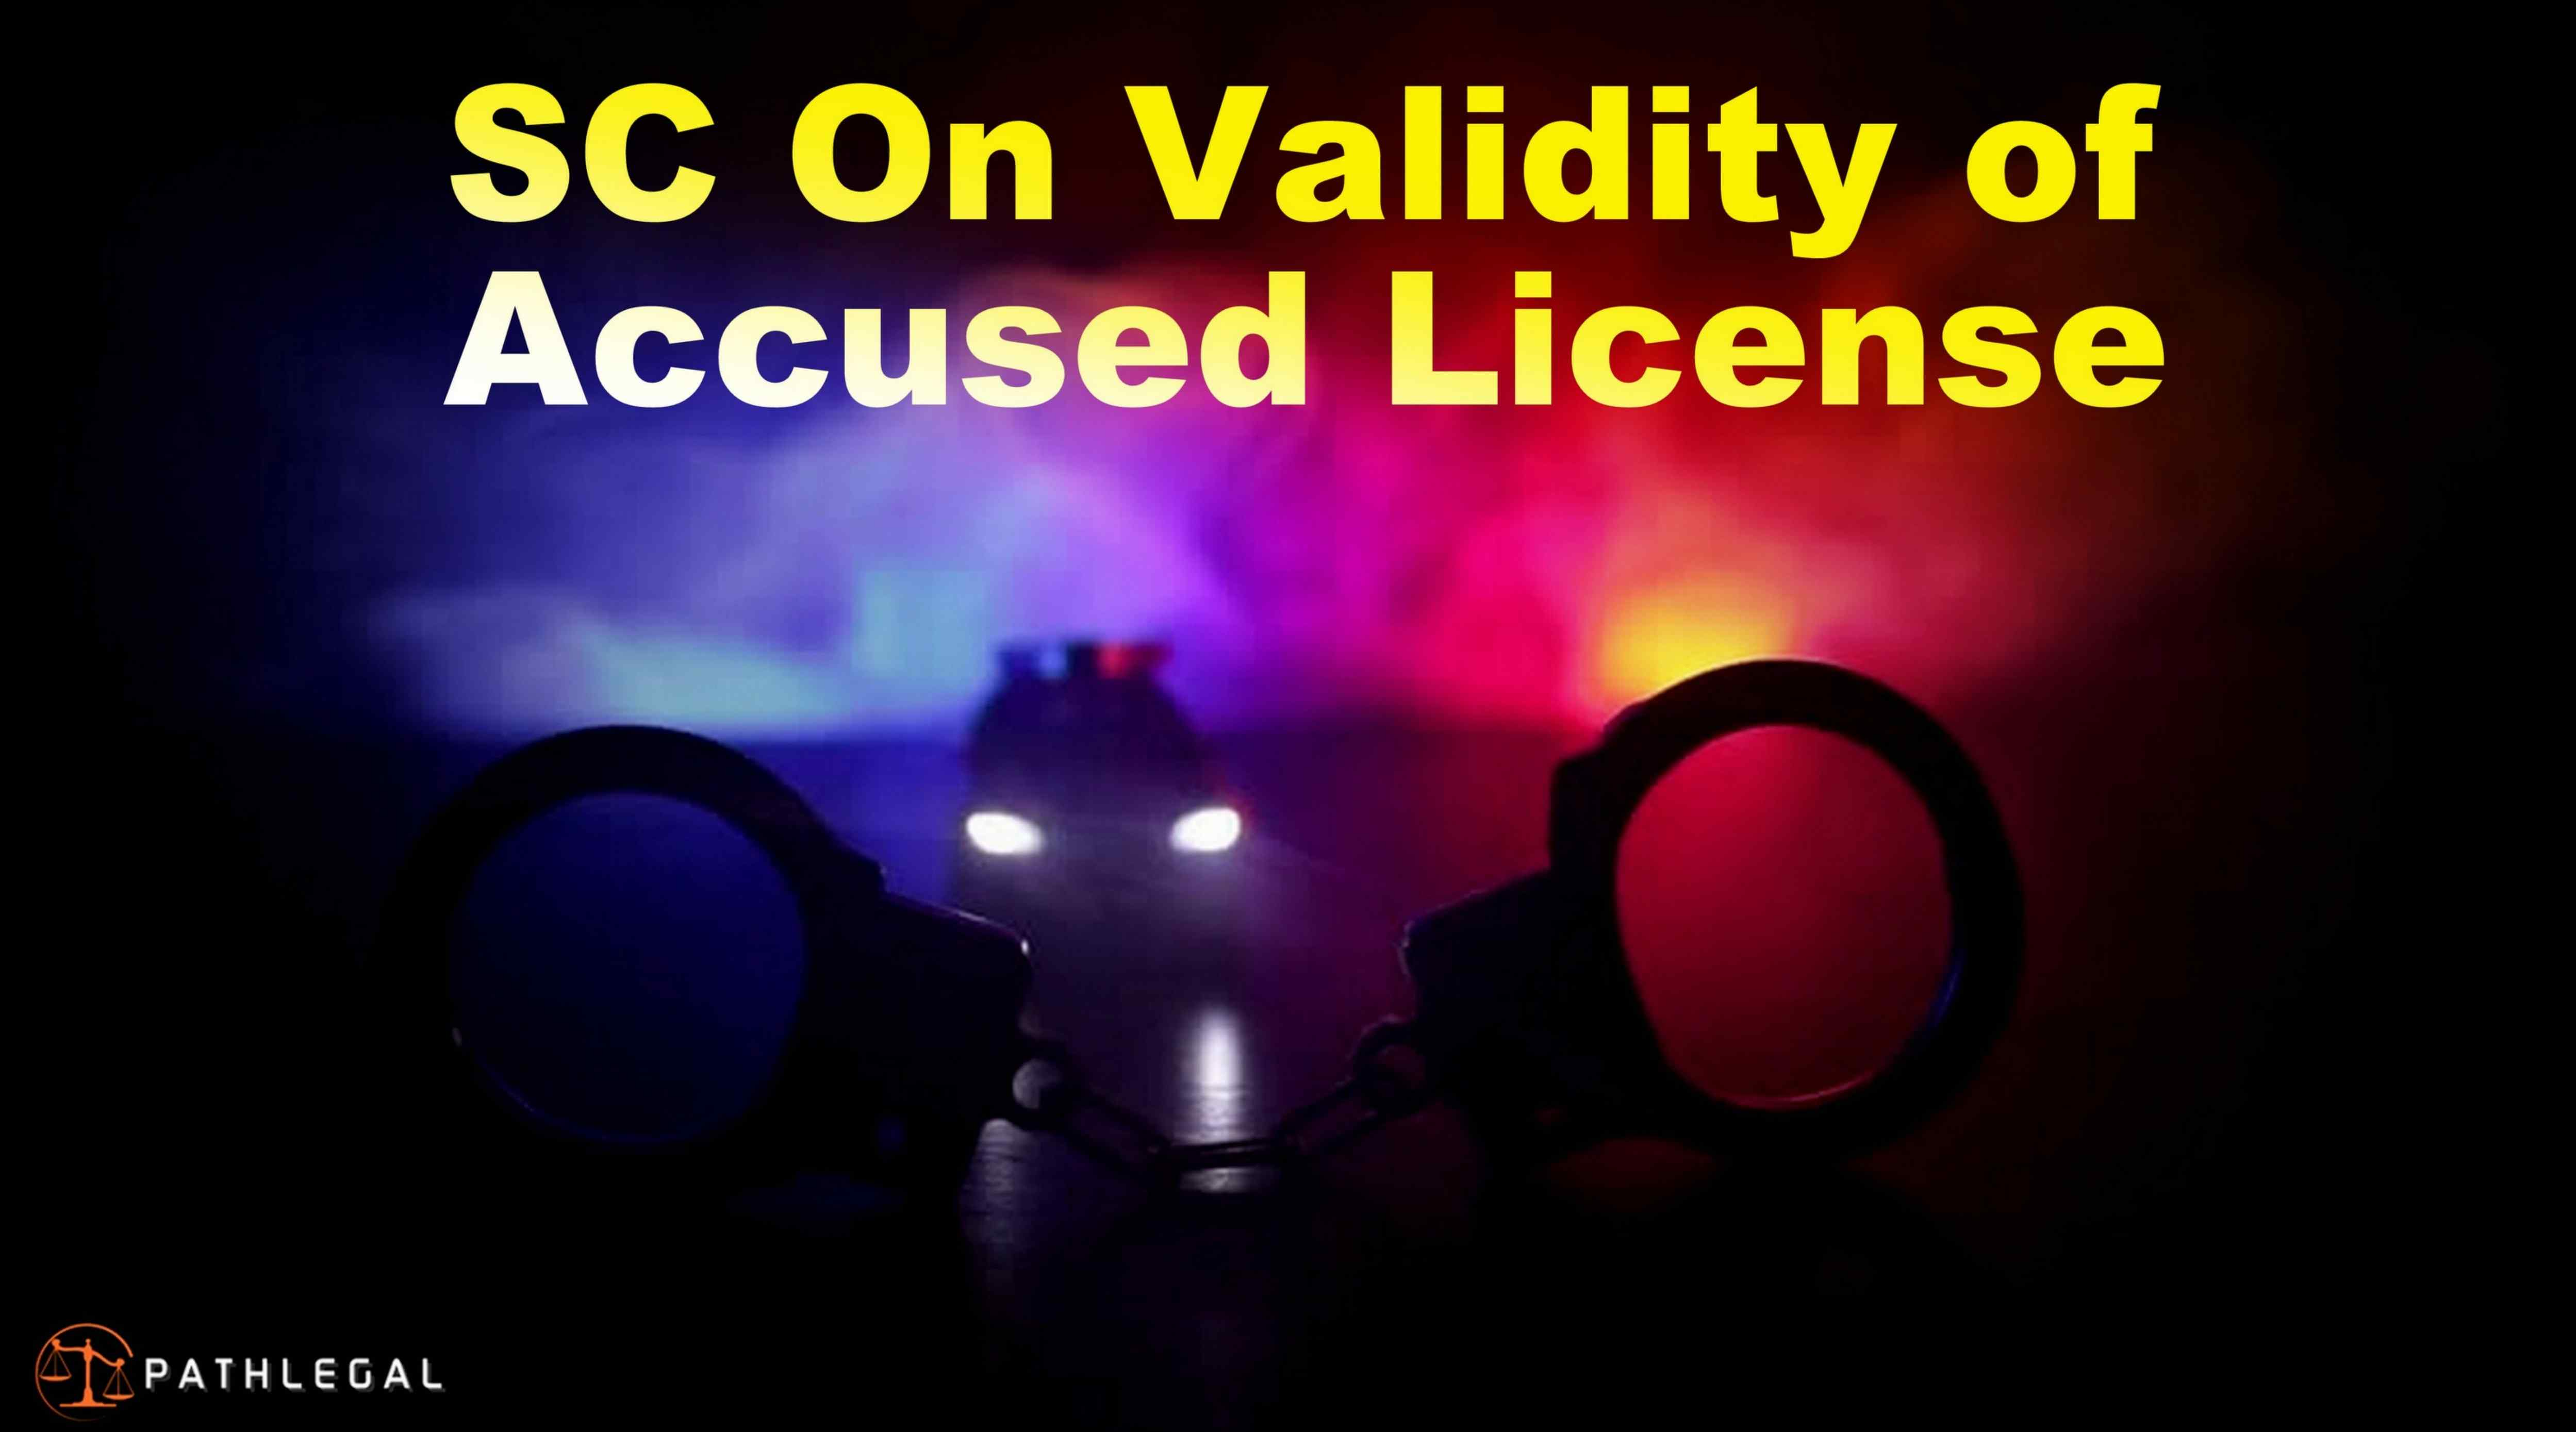 SC On Validity of License of Accused